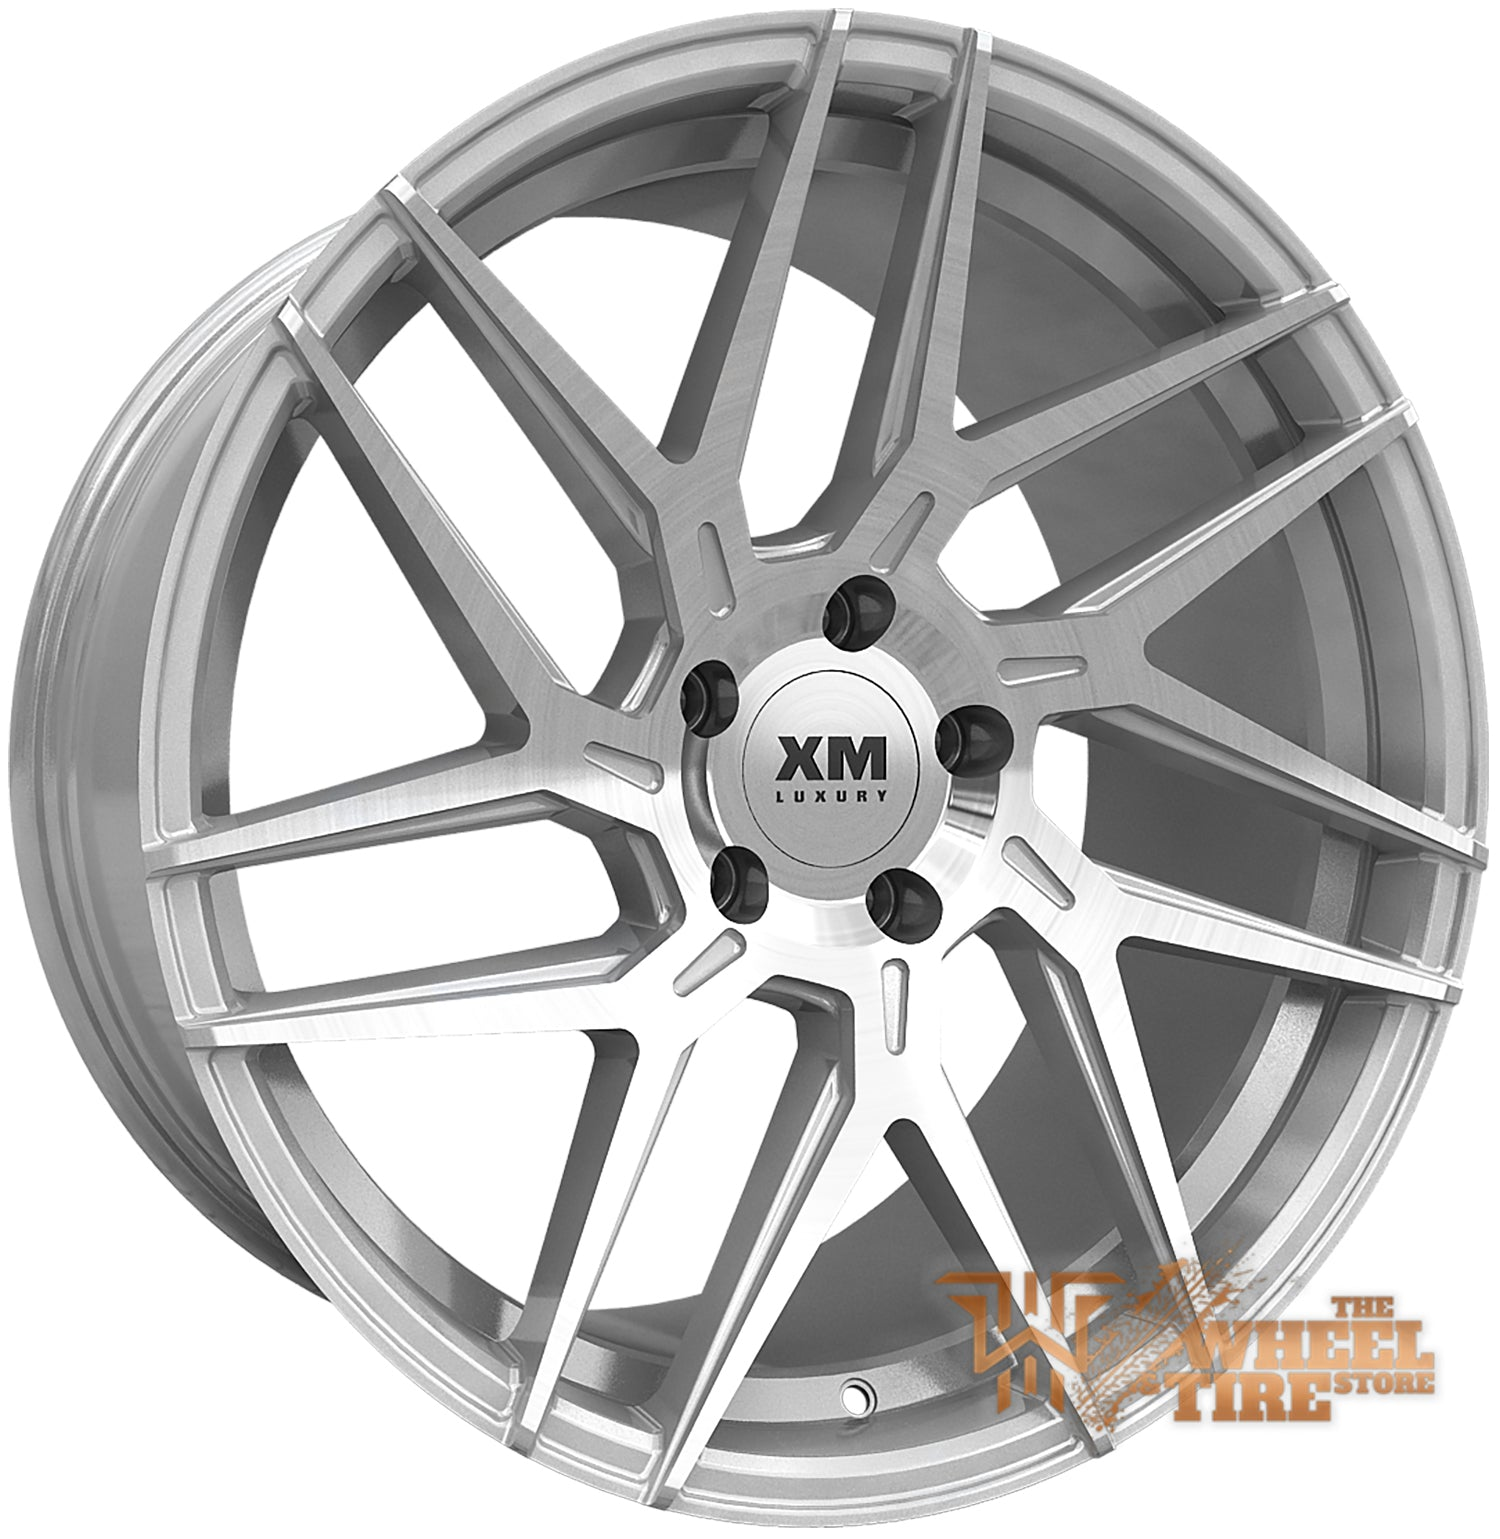 XM LUXURY XM-208 Wheel in Silver Machined Face (Set of 4)